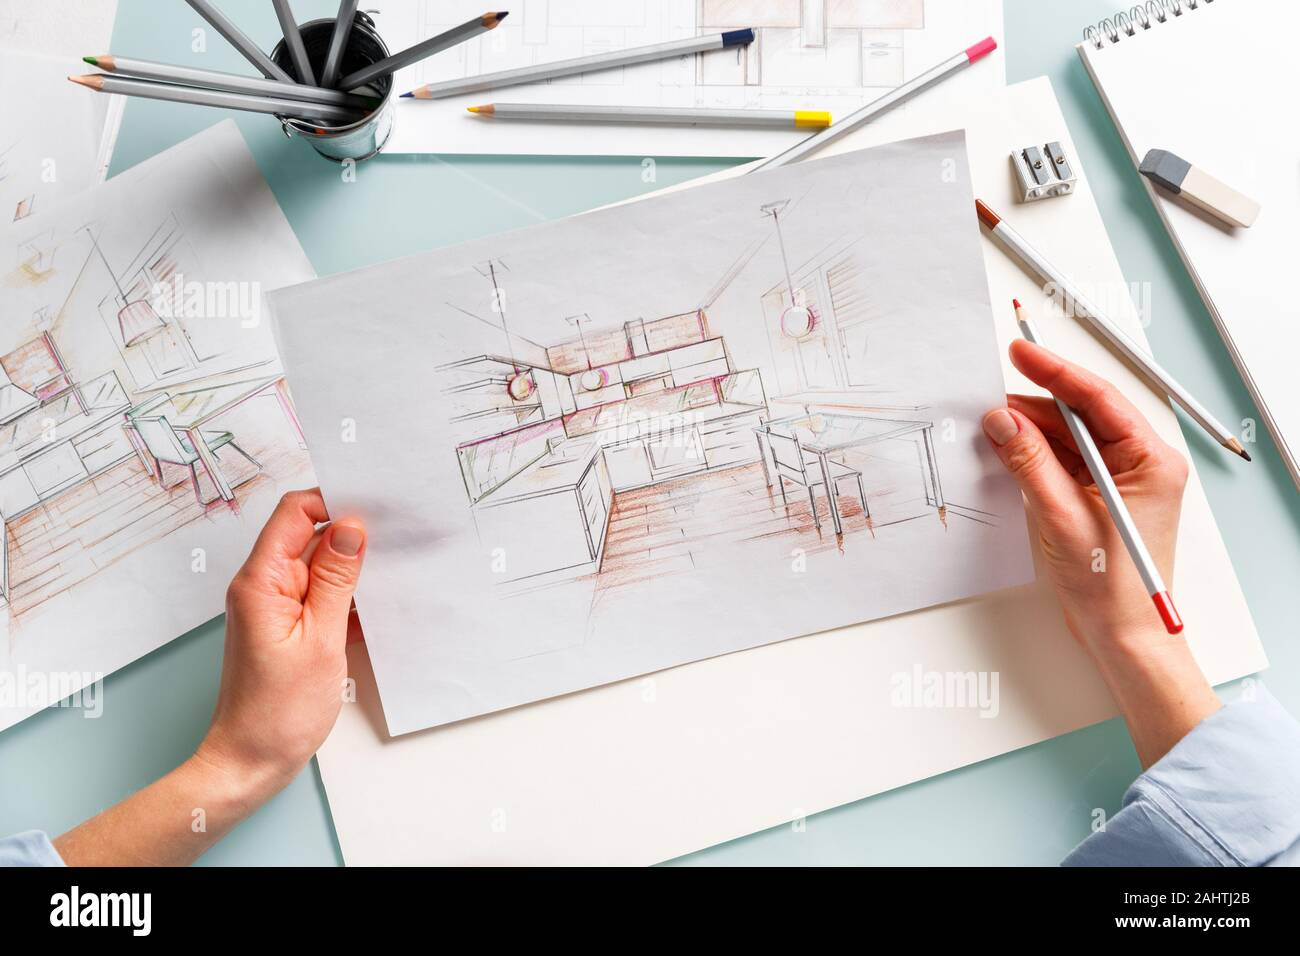 Interior Designer Holding Pencil Sketch Of A Kitchen In A Process Of Drawing Interior Design Projects Concept Stock Photo Alamy